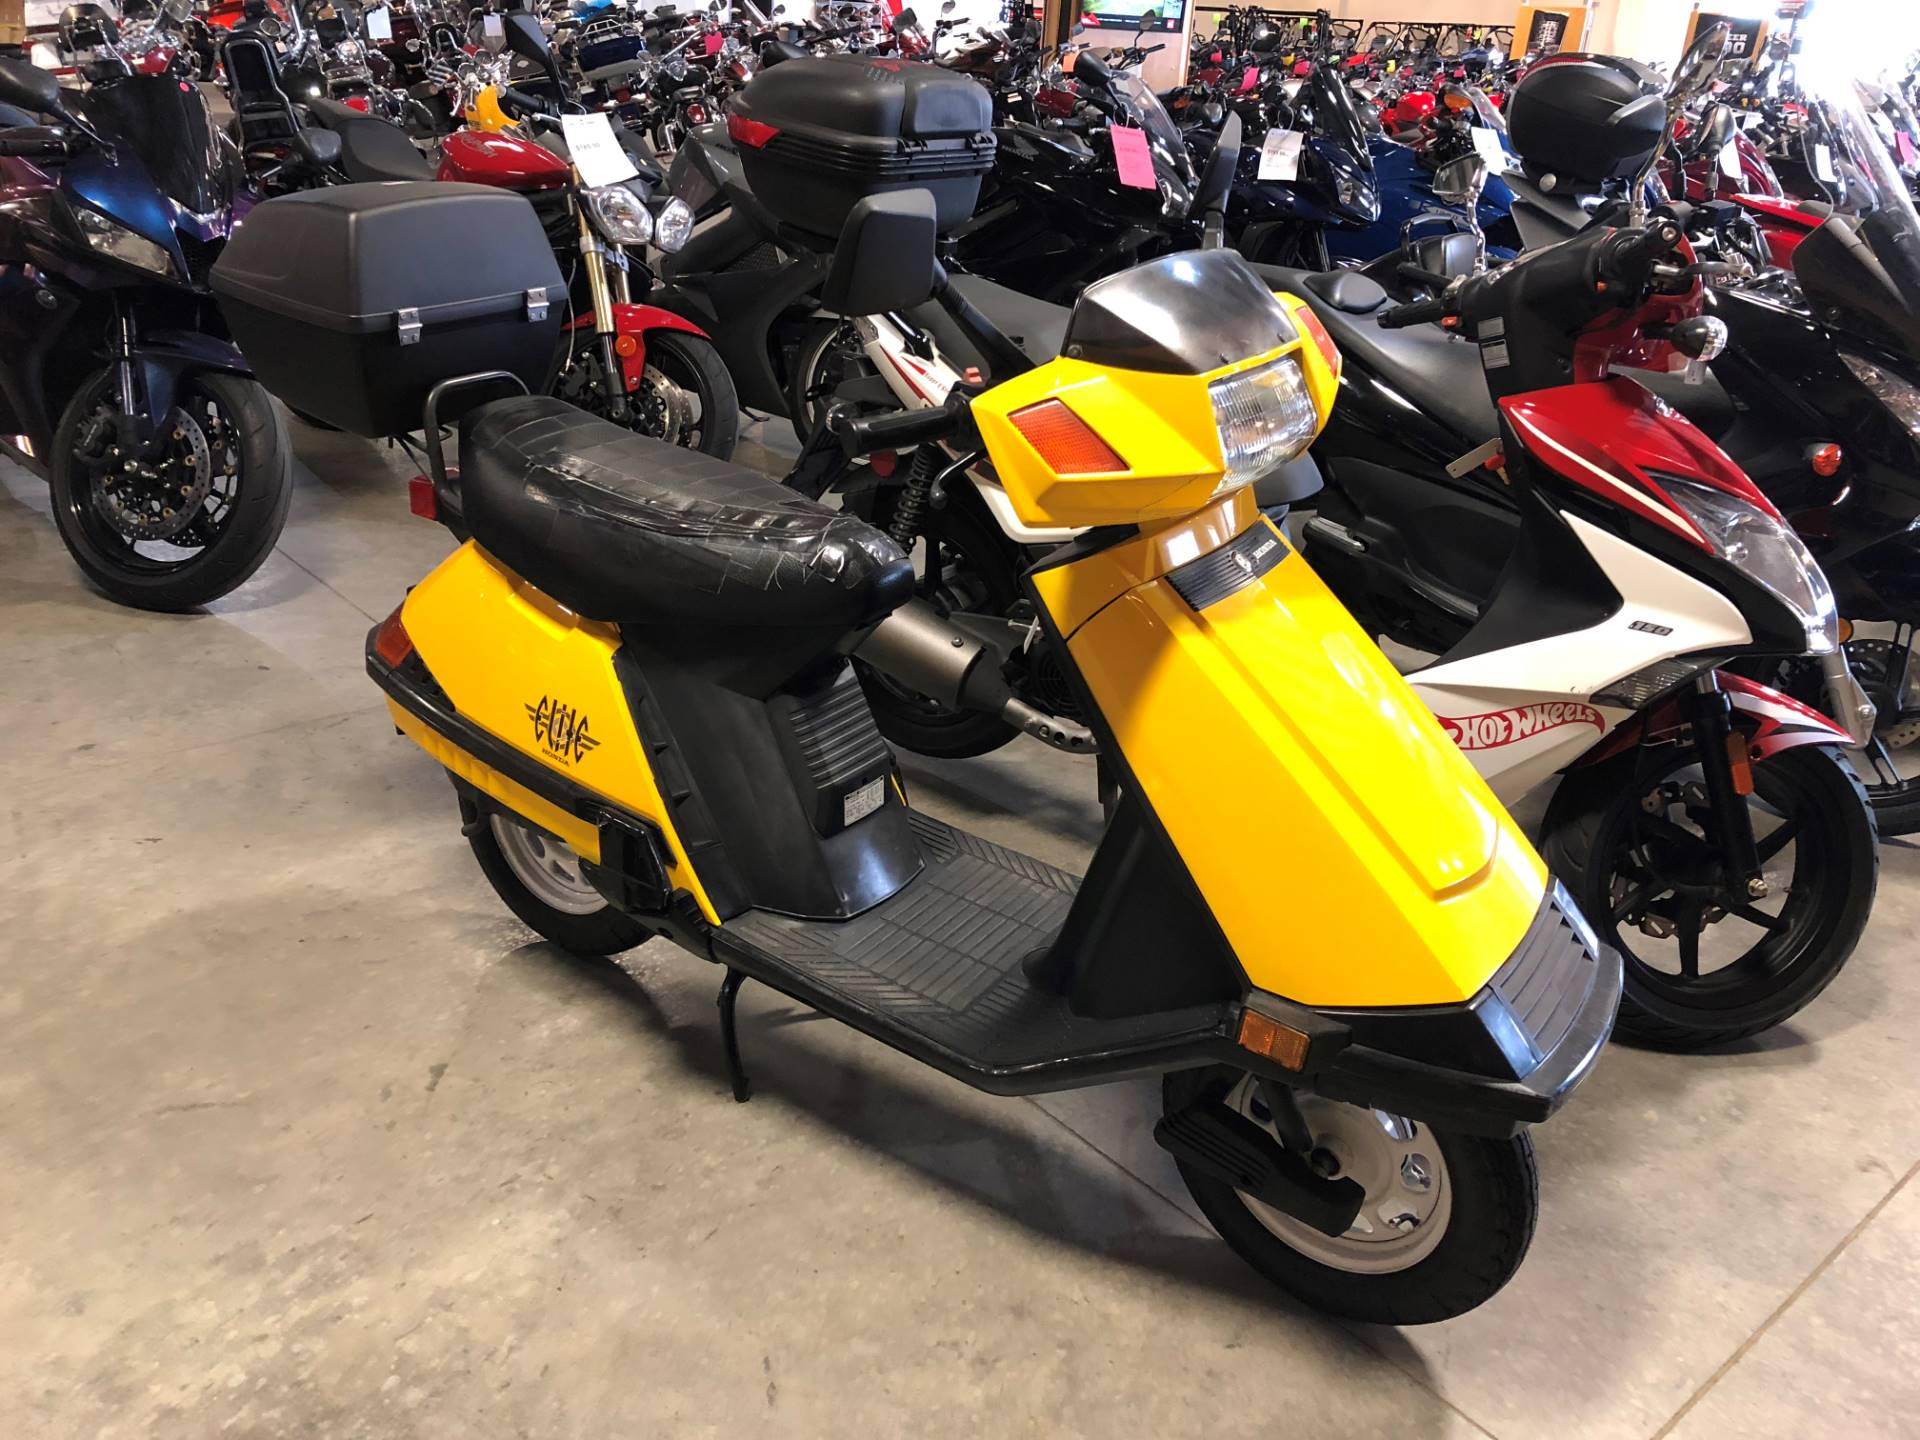 2001 Honda Elite 80 Scooter Starts And Runs For Wiring Schematic Used Scooters In Davenport Ia